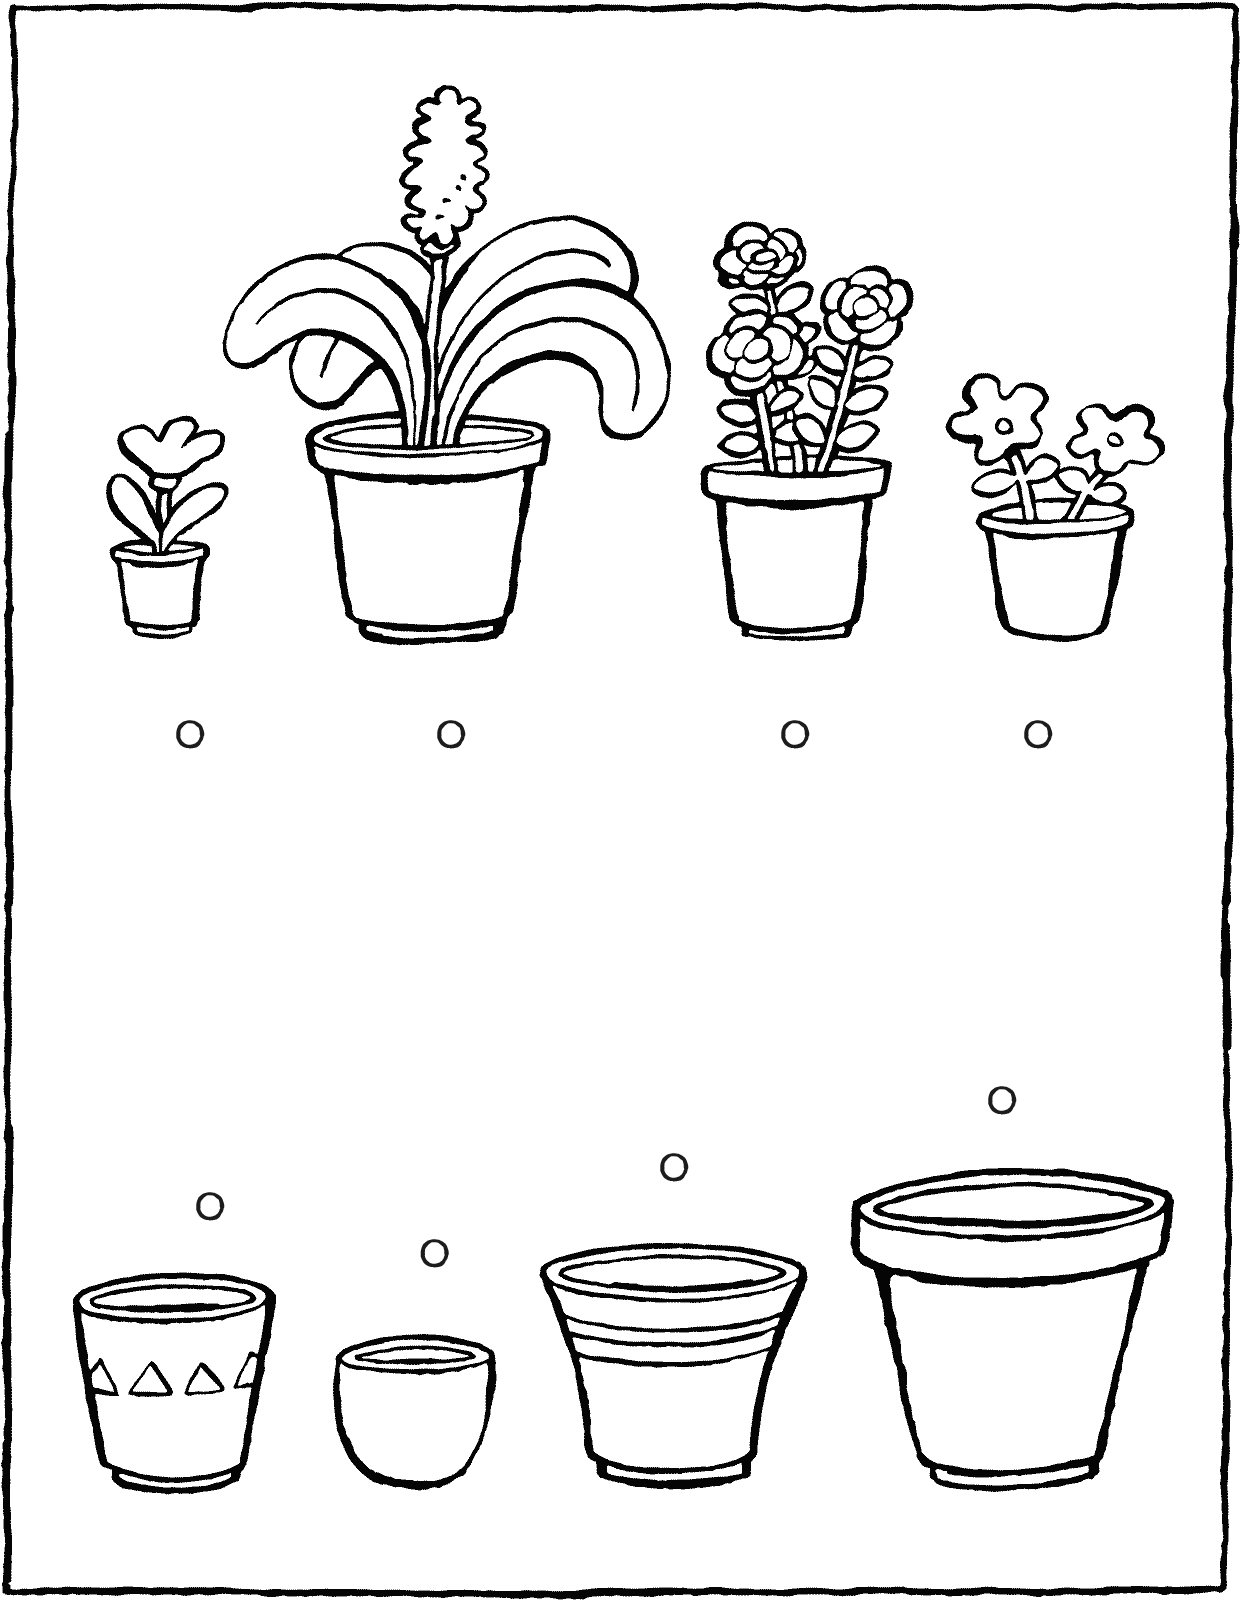 which plant fits in which pot - kiddicolour